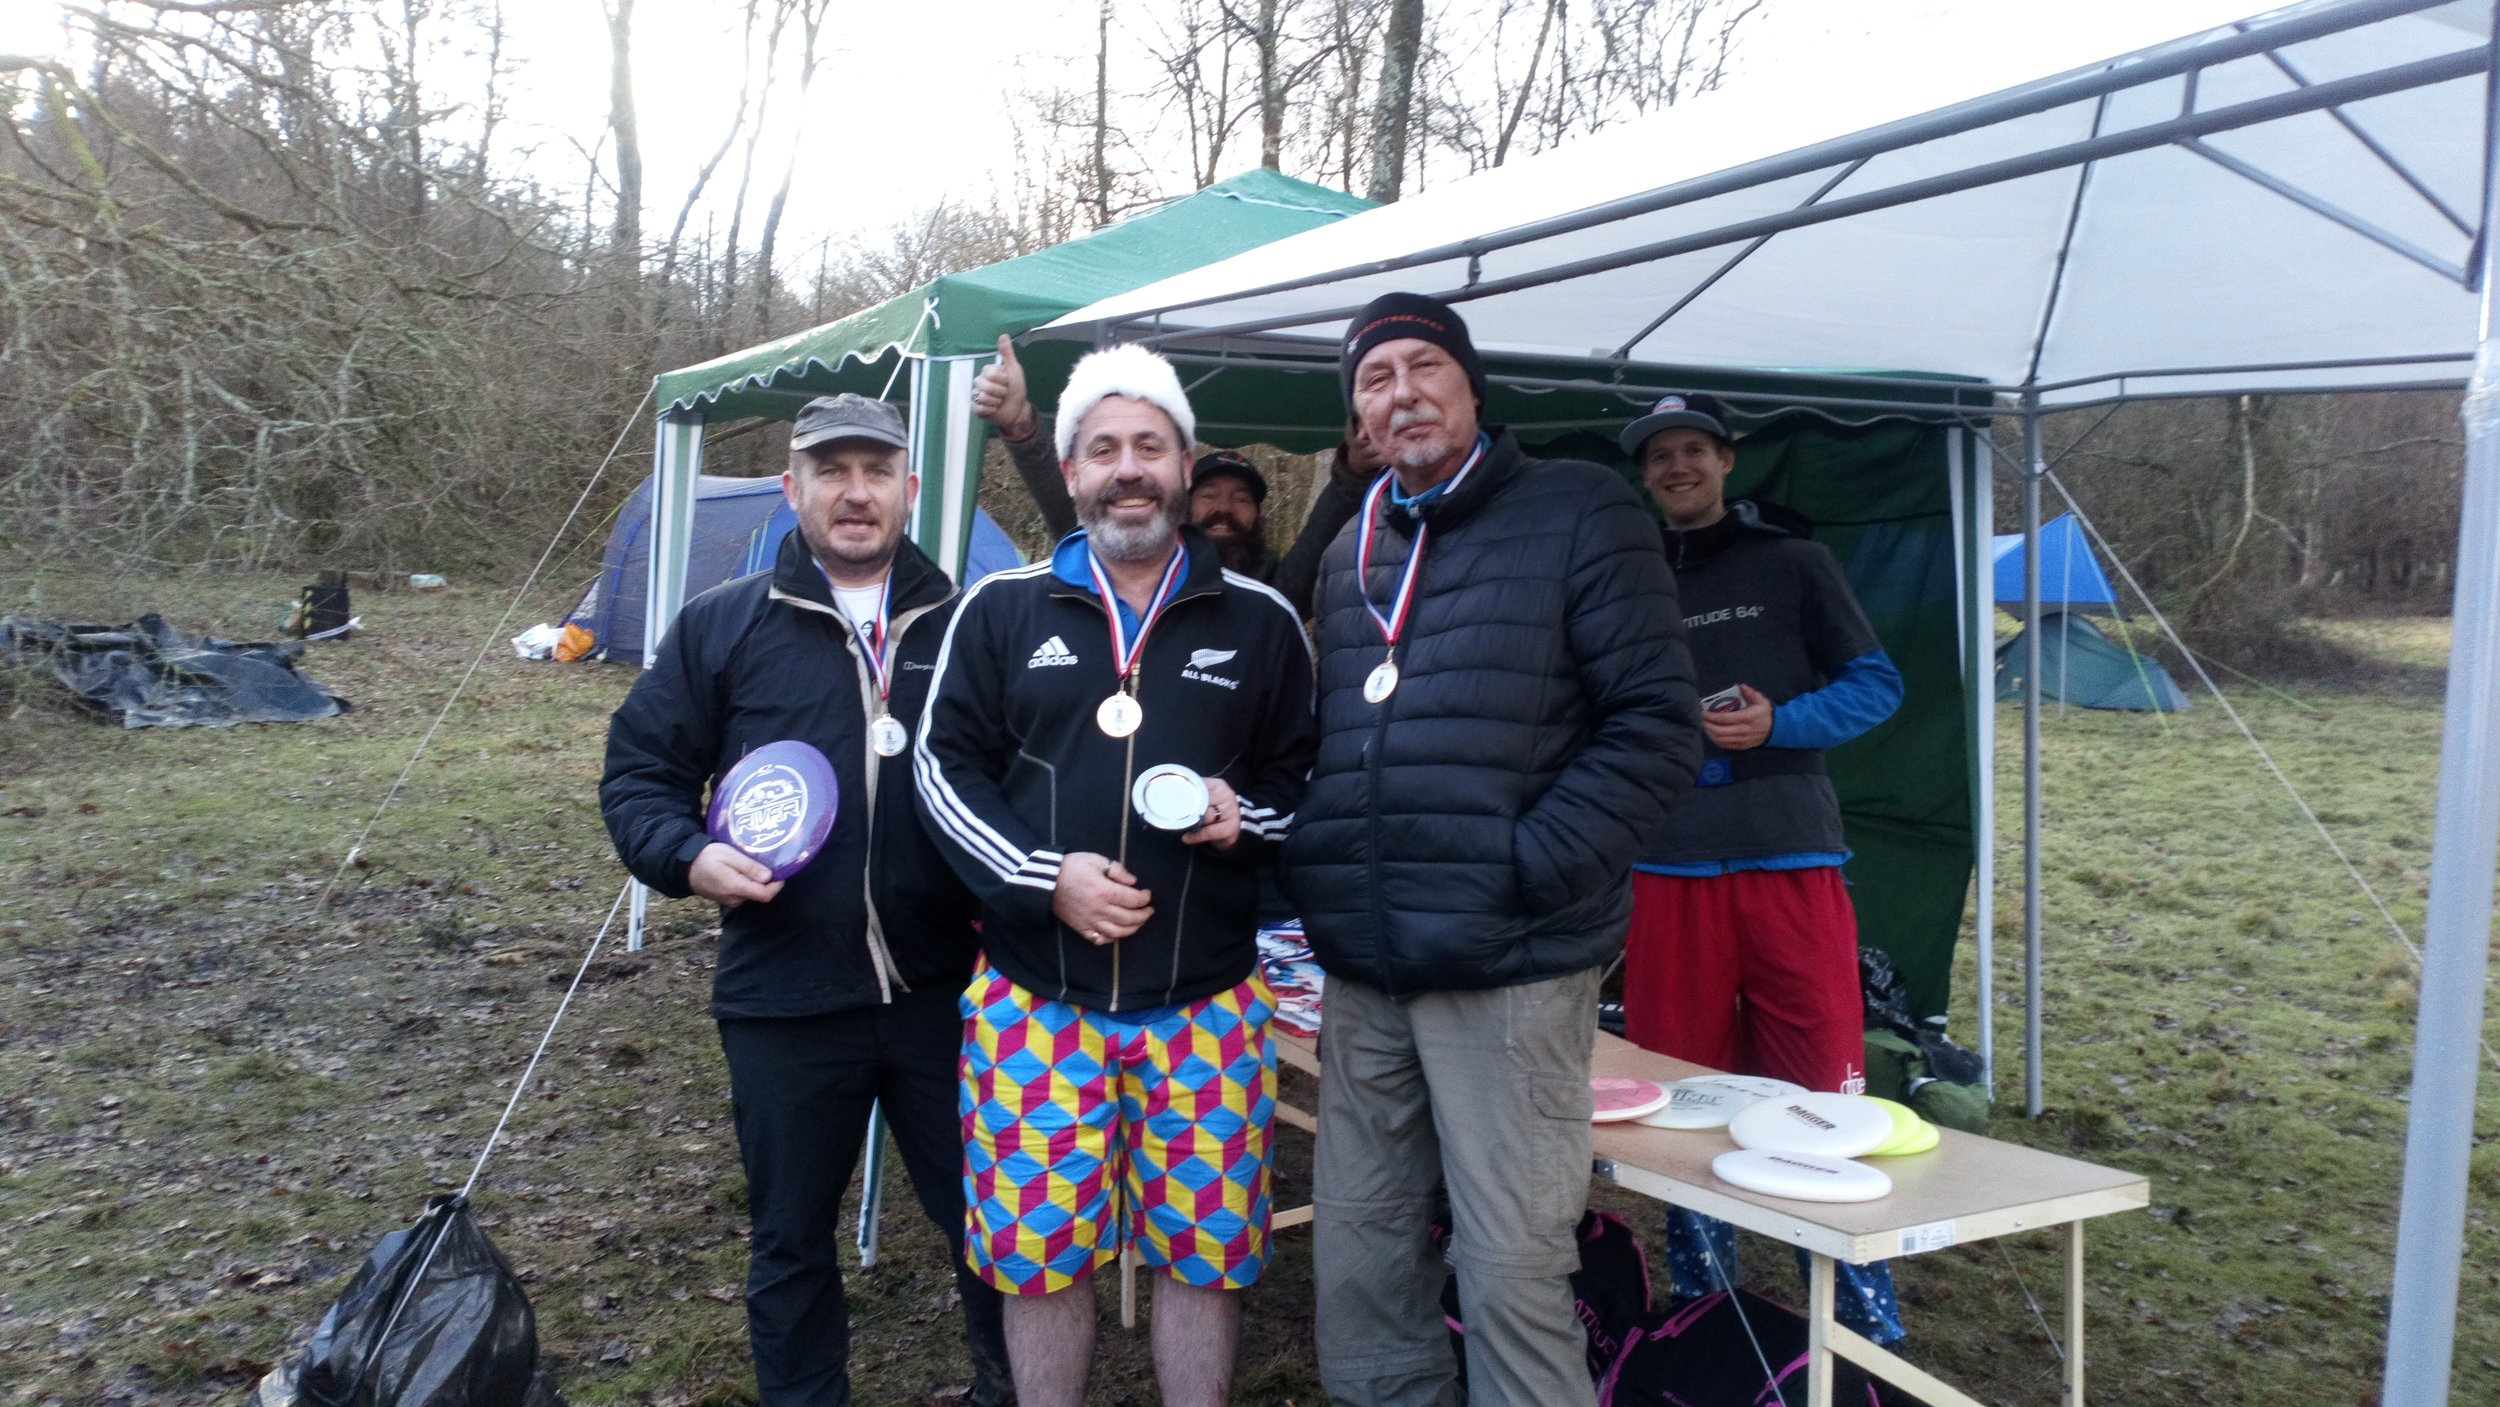 Mixed Amateurs 40+ Winners: William Woodward, Craig French and Marek Nowak